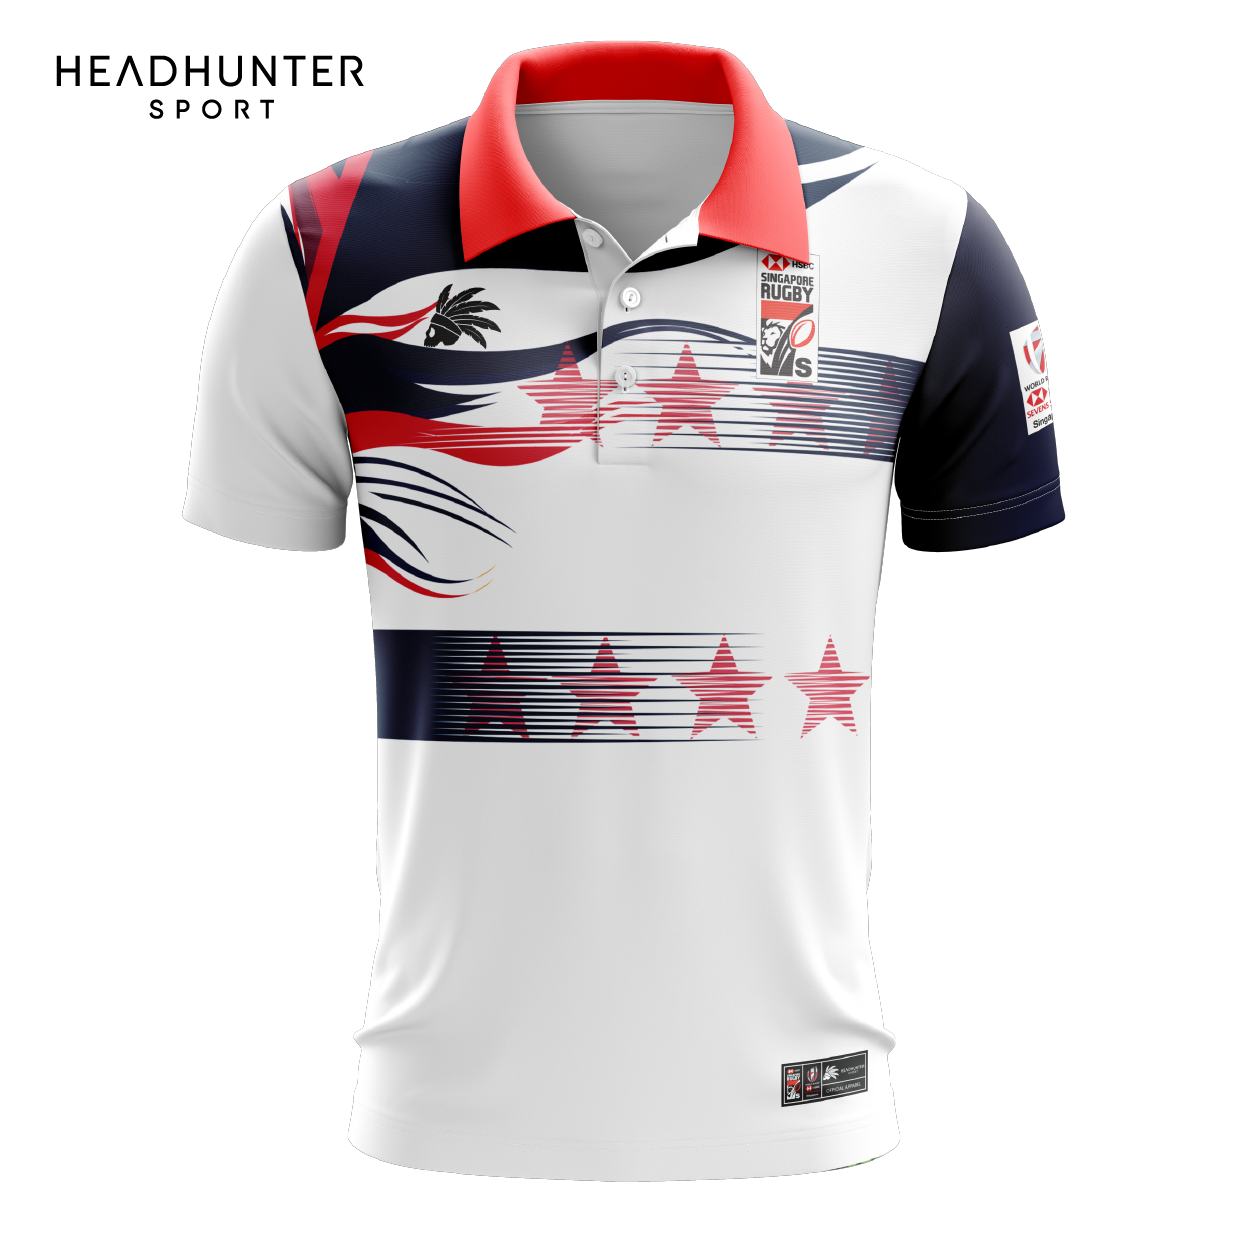 HSBC RUGBY 7S SERIES SINGAPORE 2019 MERCHANDISE USA POLO